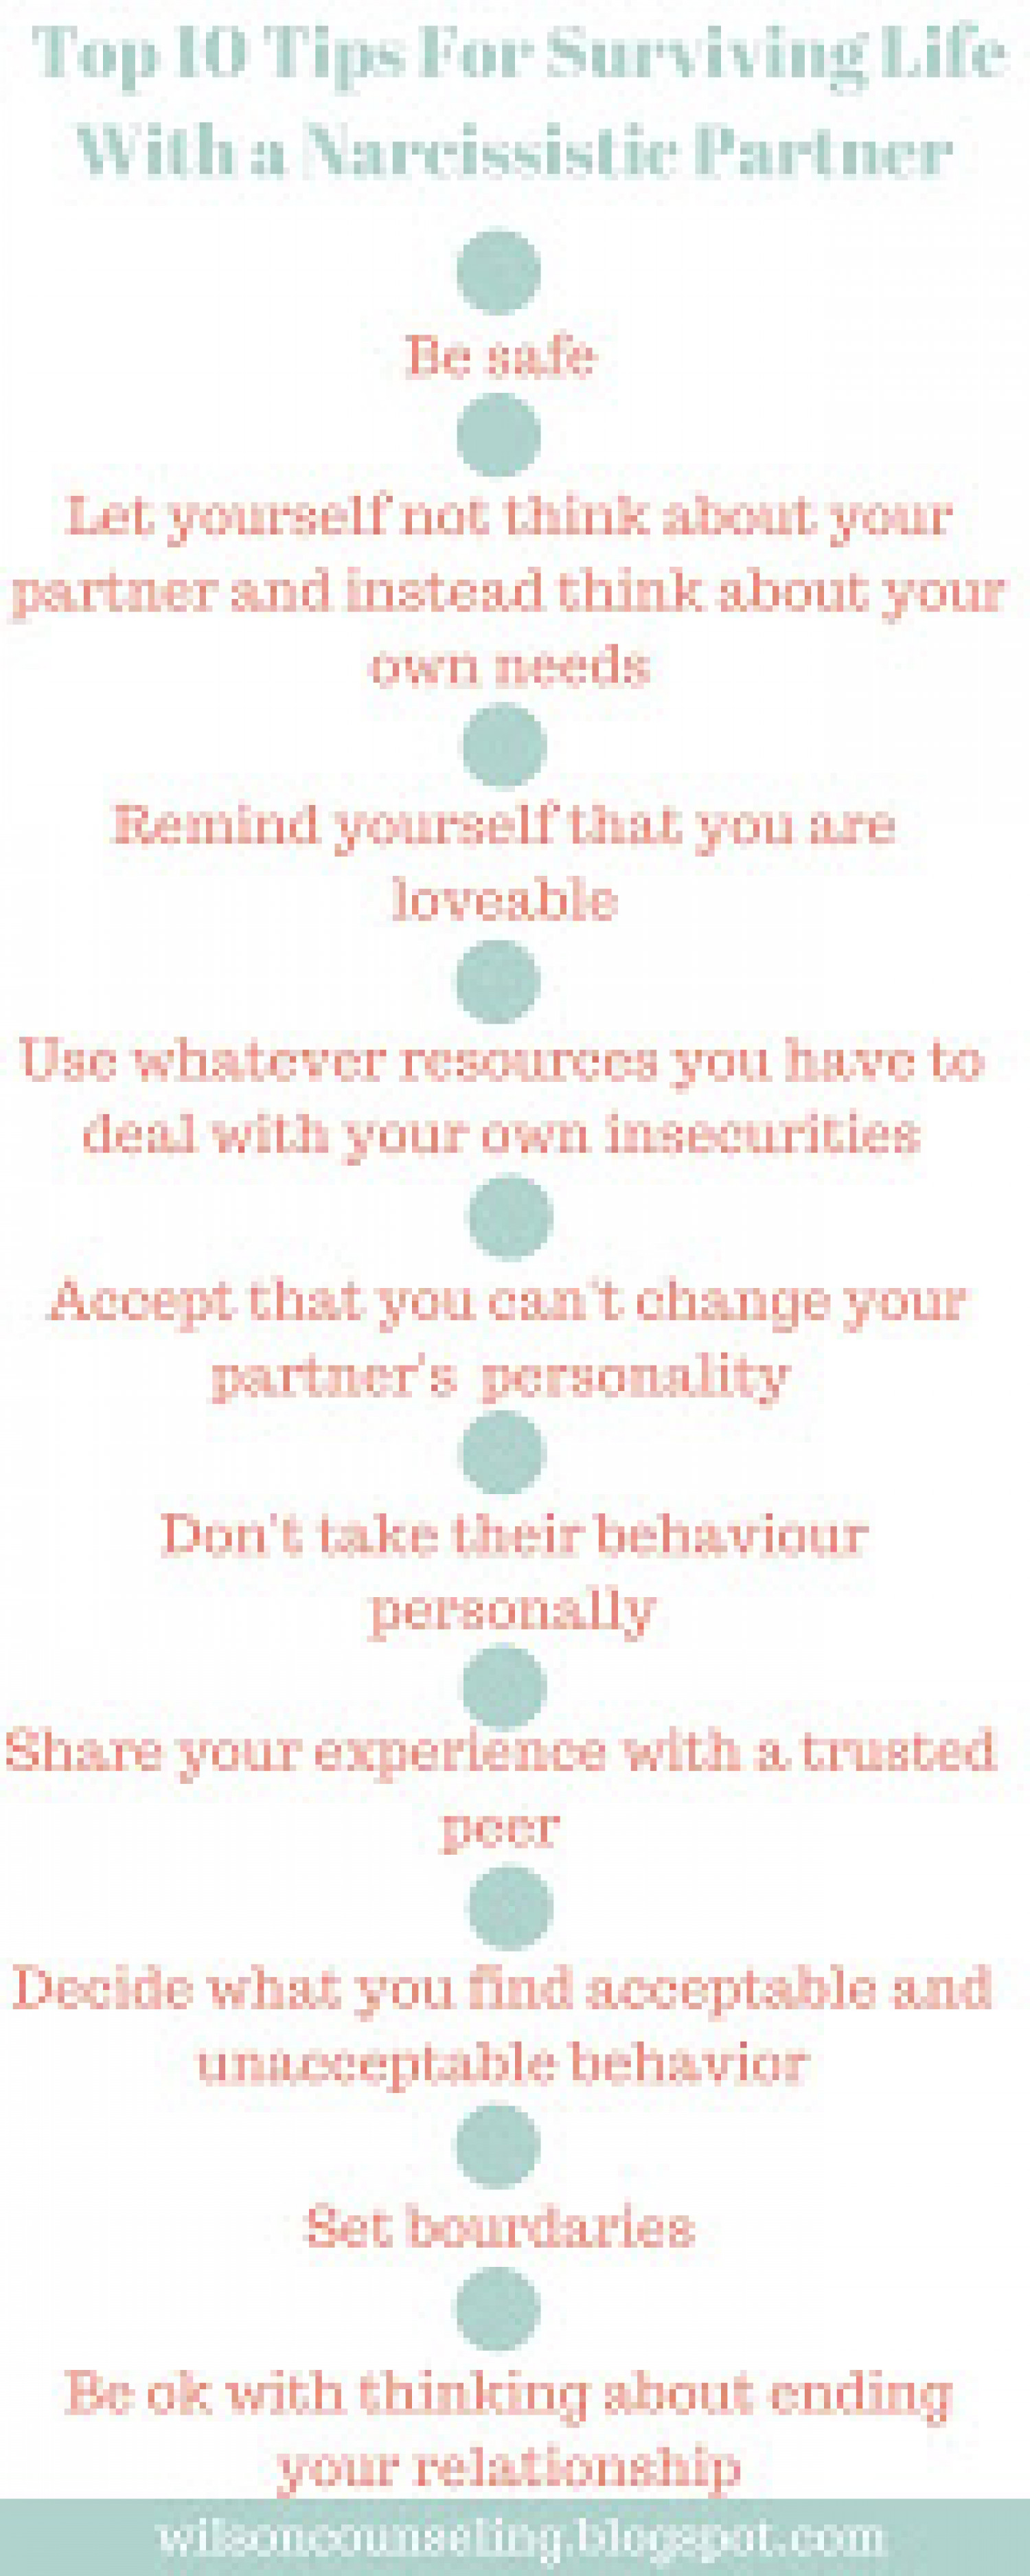 Top 10 Tips For Surviving Life With a Narcissistic Partner Infographic